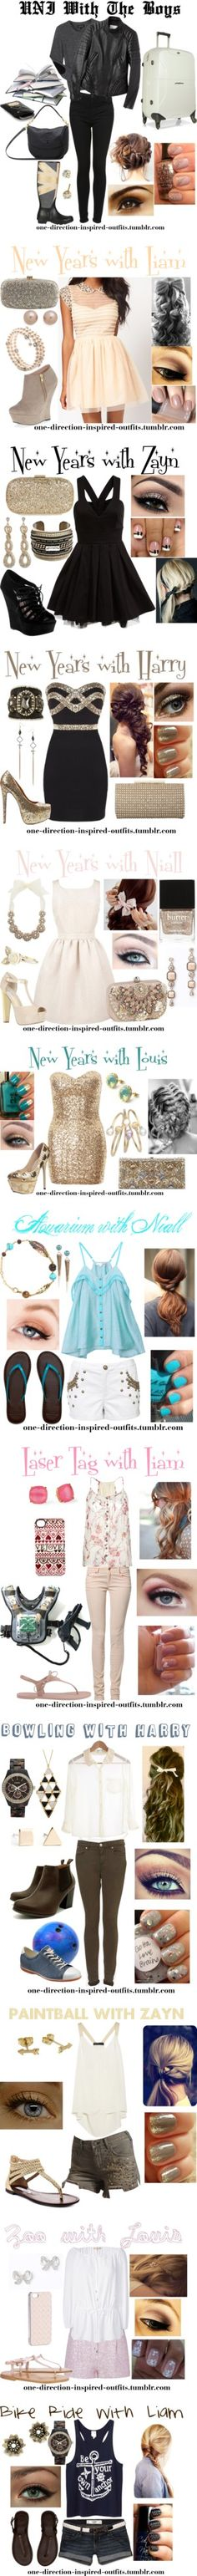 """""""One Direction Inspired Outfits and Imagines"""" by one-direction-inspired-outfits ❤ liked on Polyvore"""